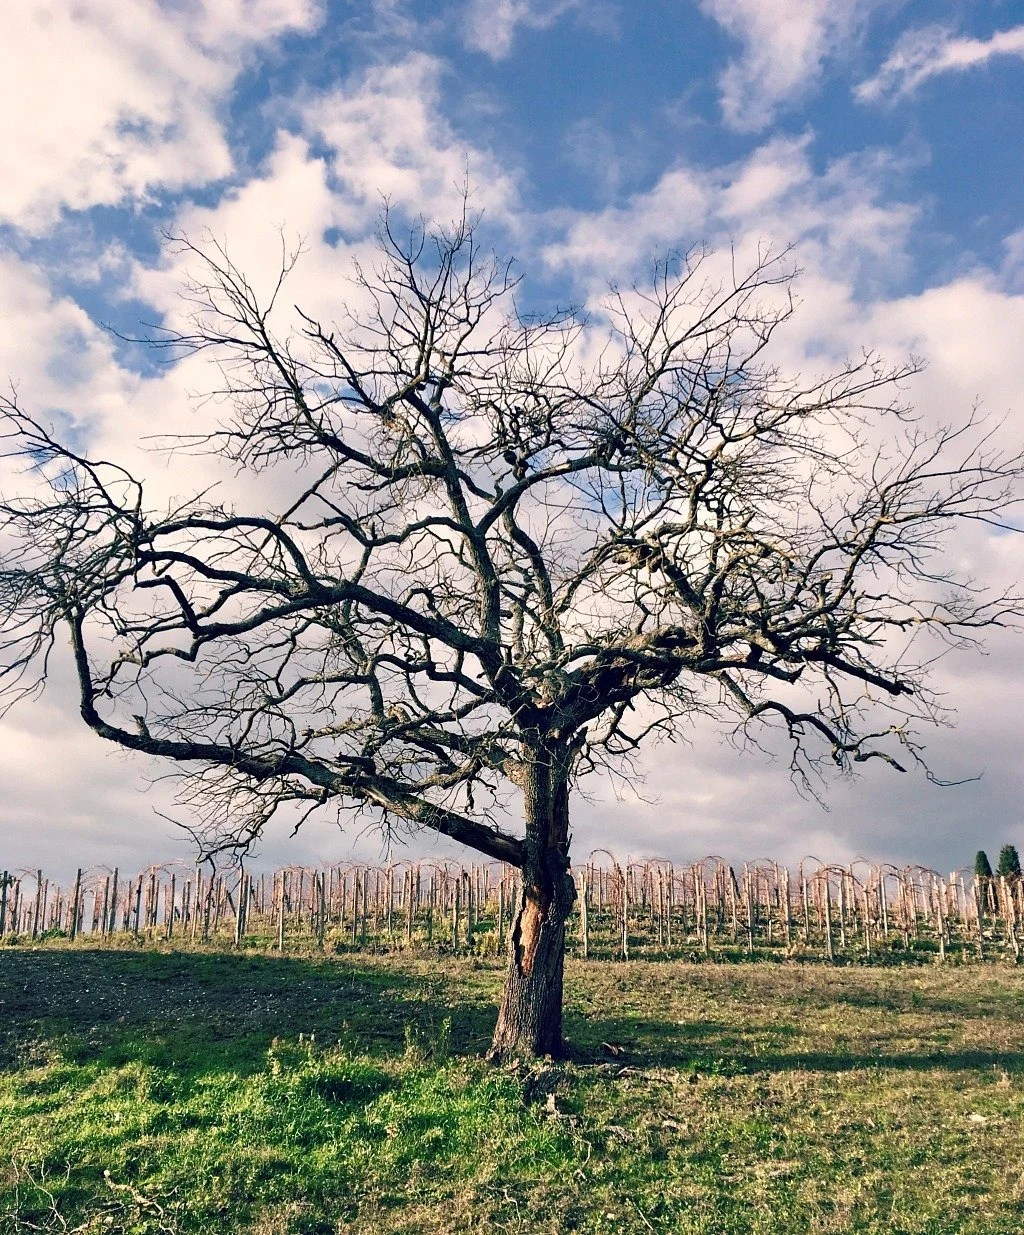 Stark tree and vineyards in Tuscany